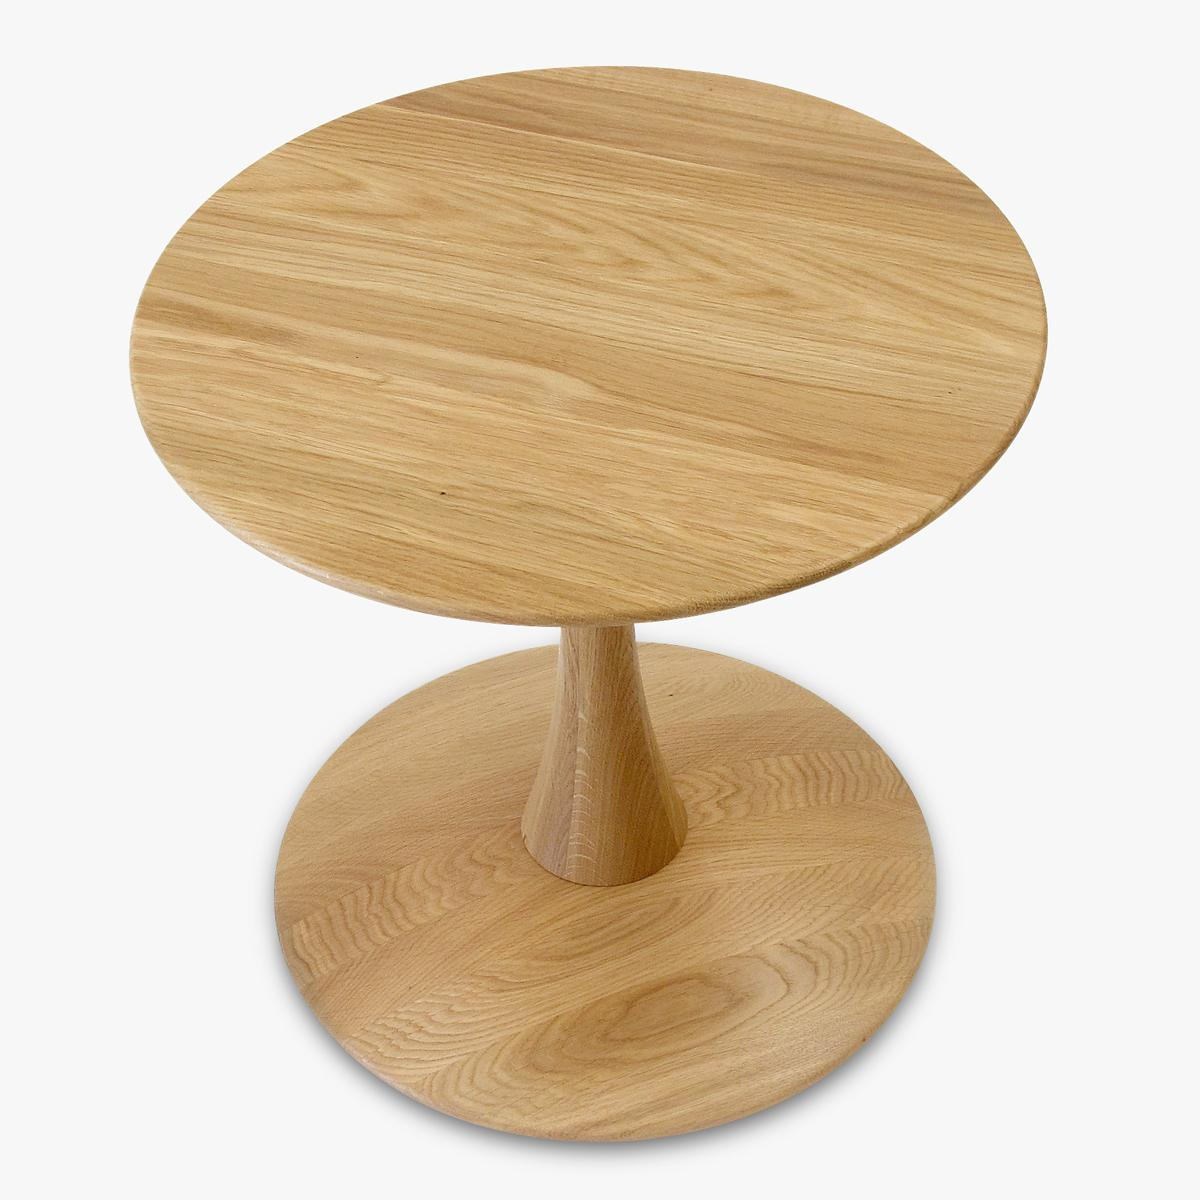 Nanna-Ditzel-Toadstool-Oak-Top-1200